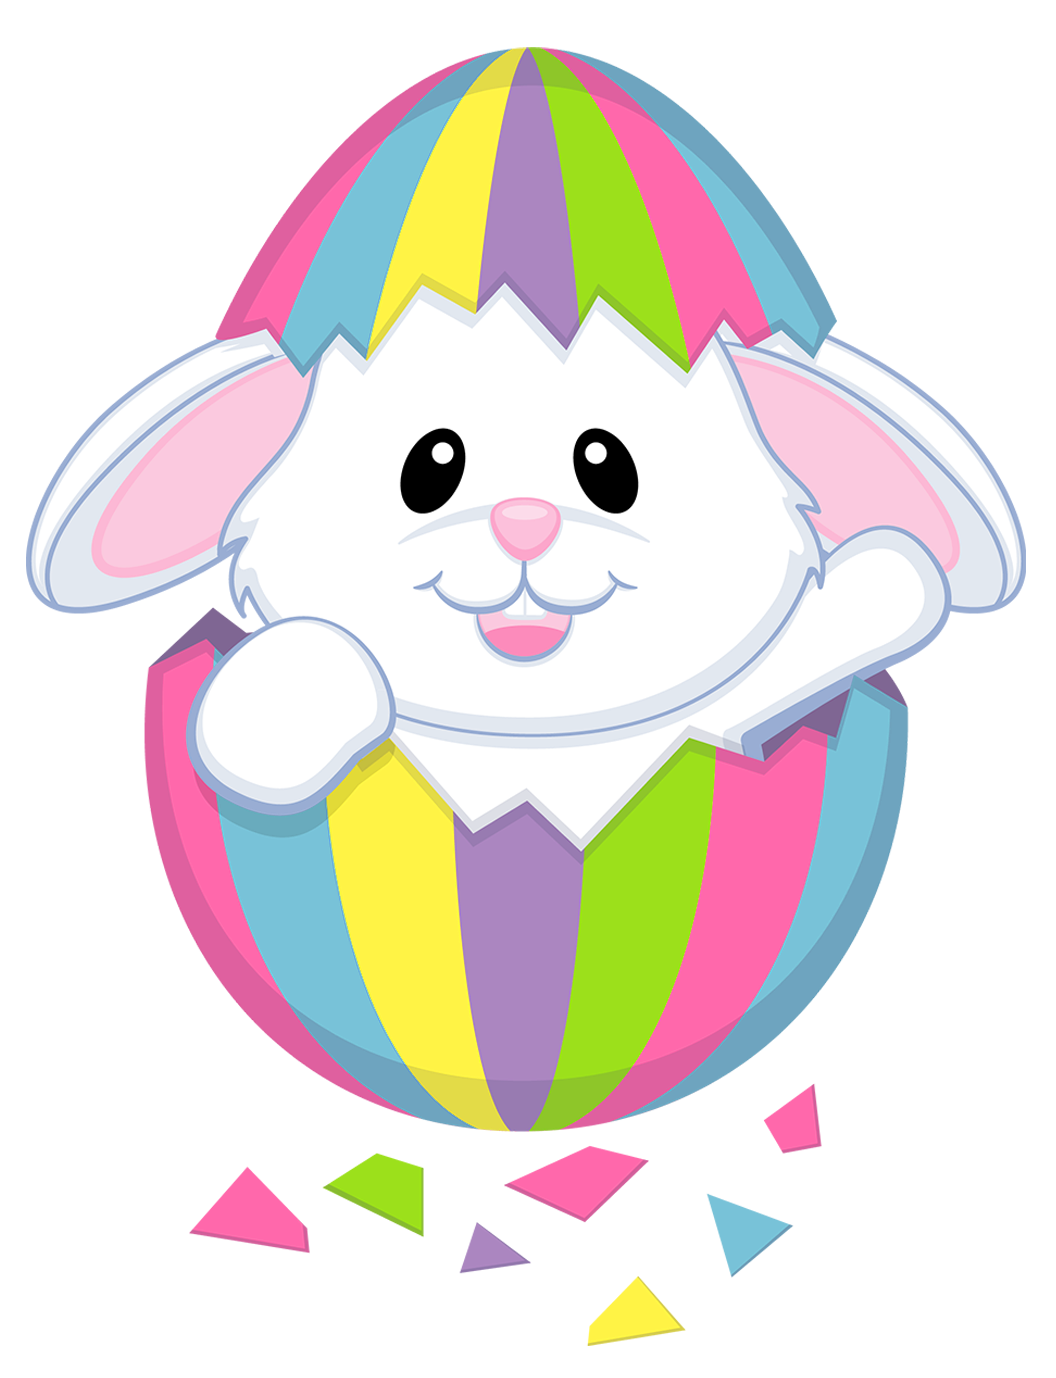 easter bunny clipart best easter eggs pinterest easter bunny rh pinterest com easter bunny clipart black and white easter bunny clipart no background